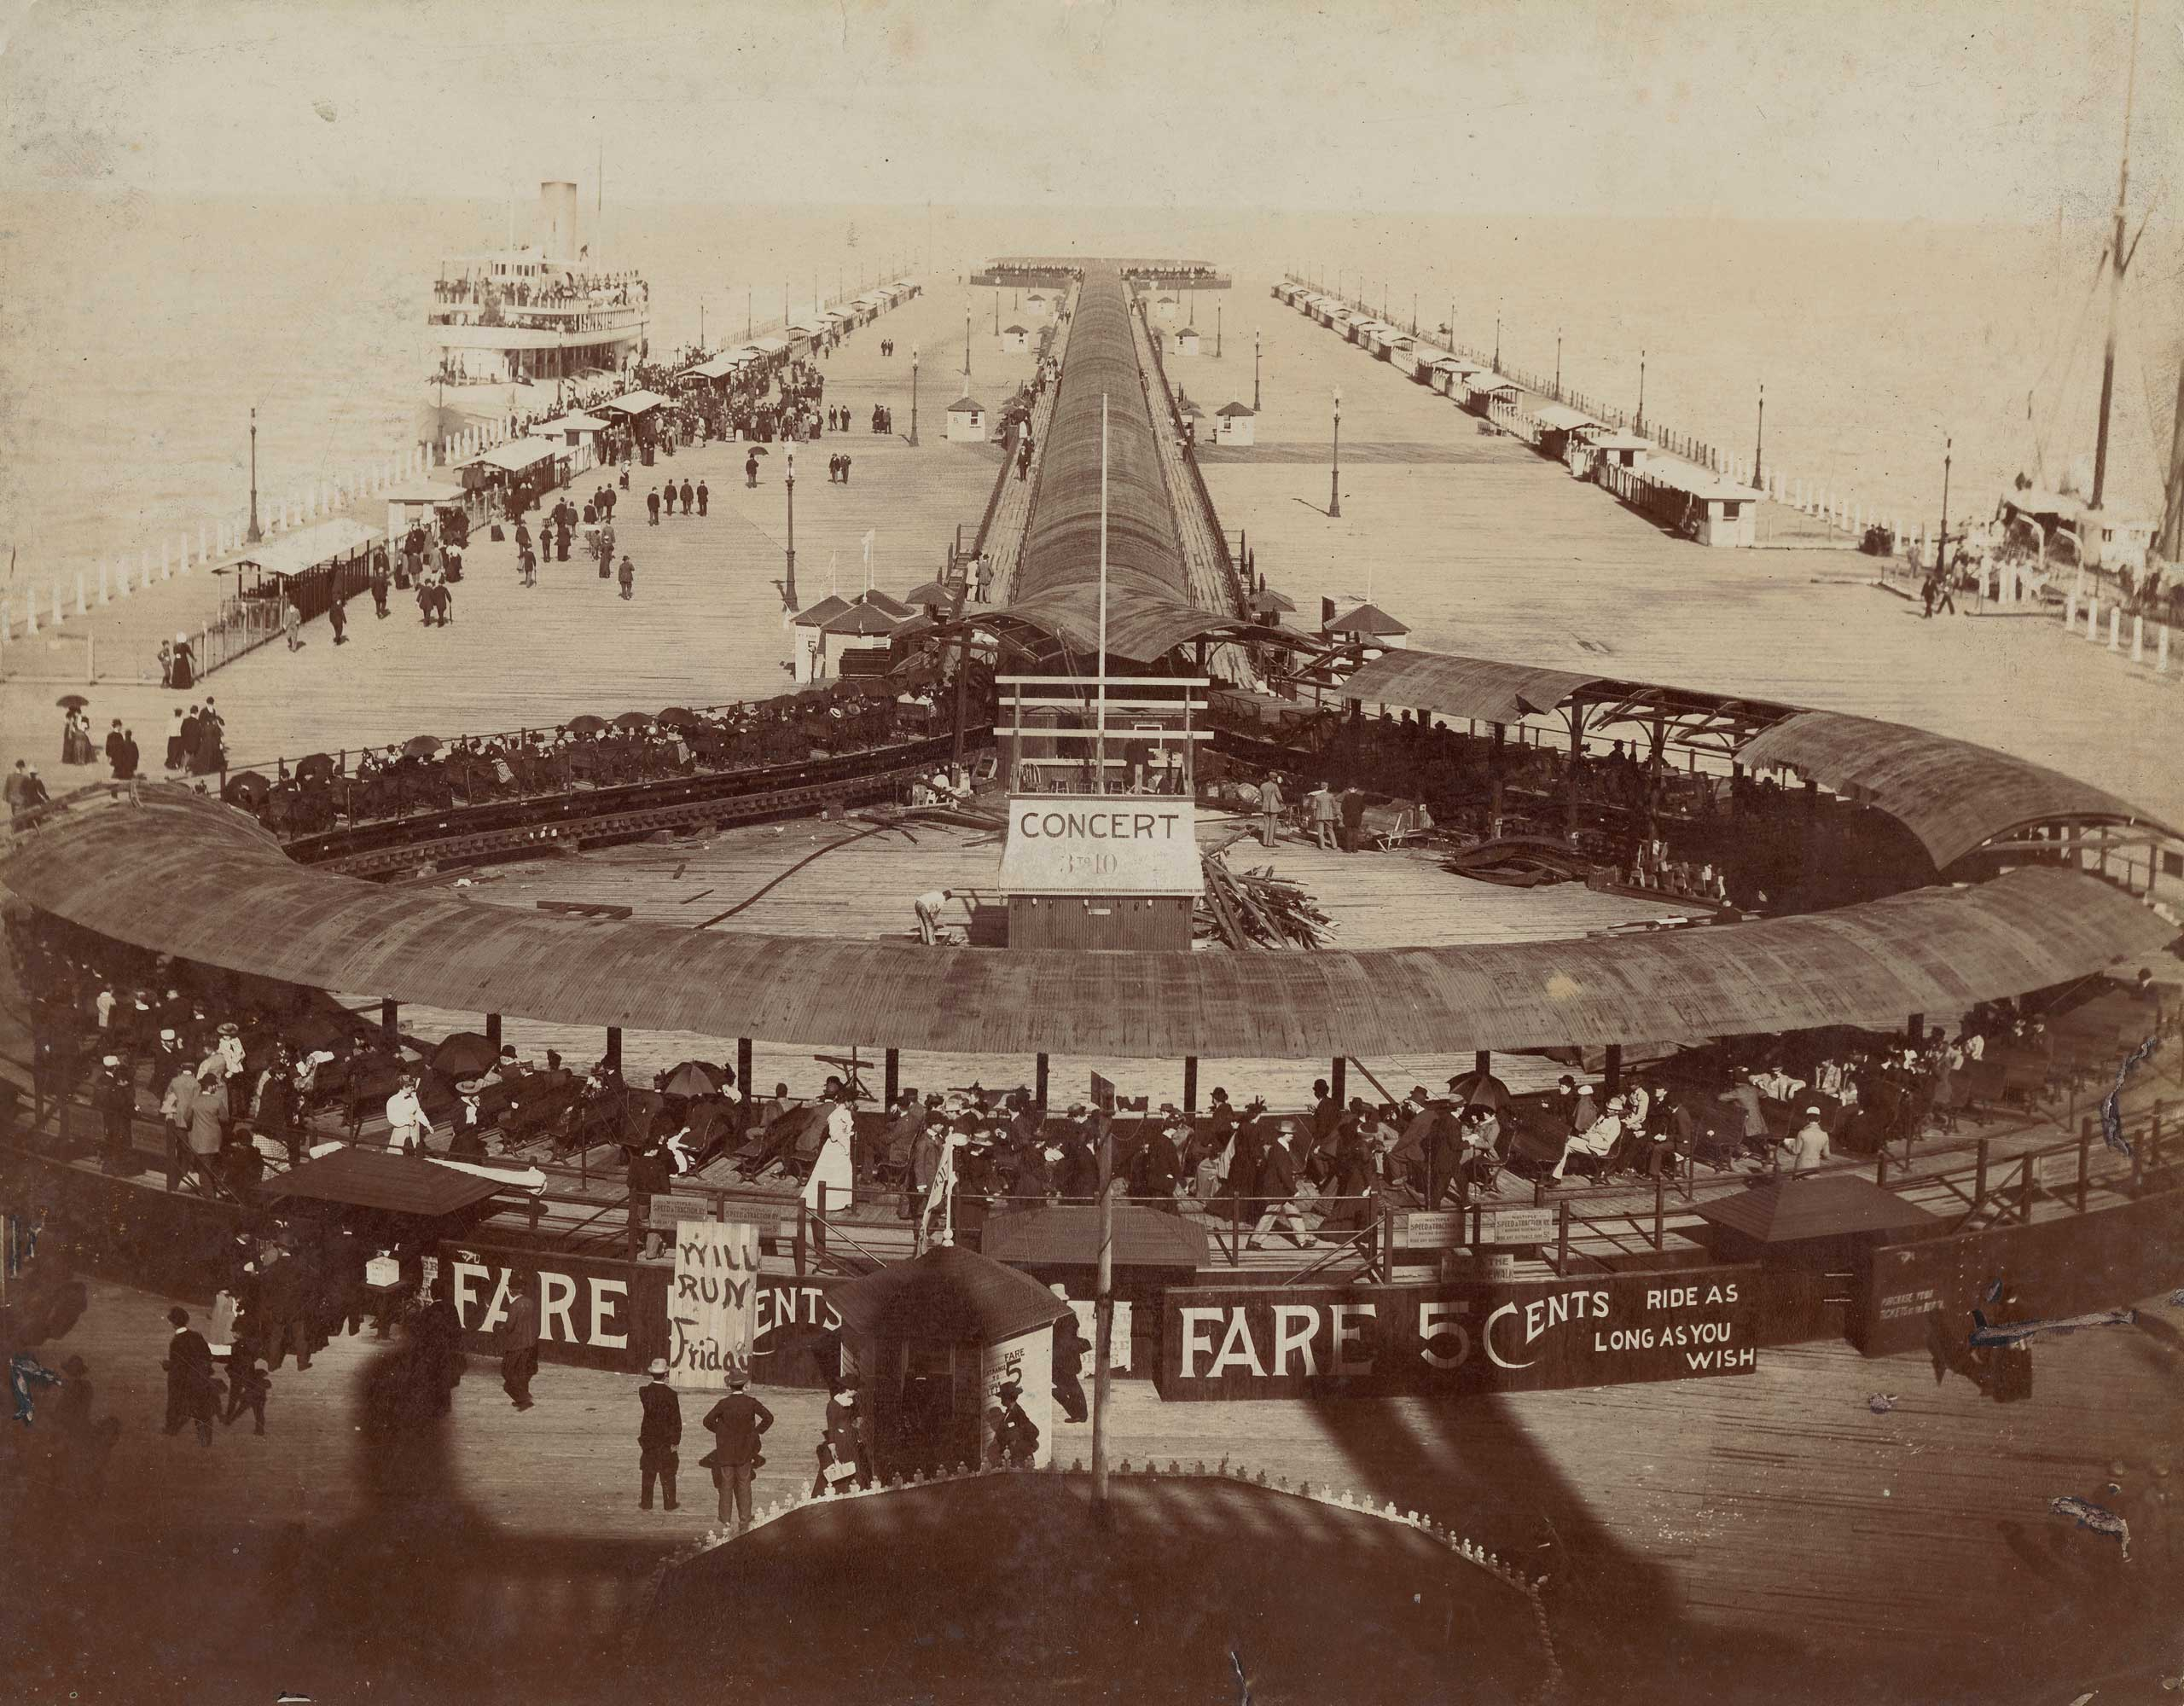 """A collection of 101 homemade recordings from the 1893 Chicago World's Fair features world music from special international """"villages,"""" including some of the earliest know recordings of non-Western styles such as Javanese Gamelan. (Chicago History Museum/Getty Images)"""